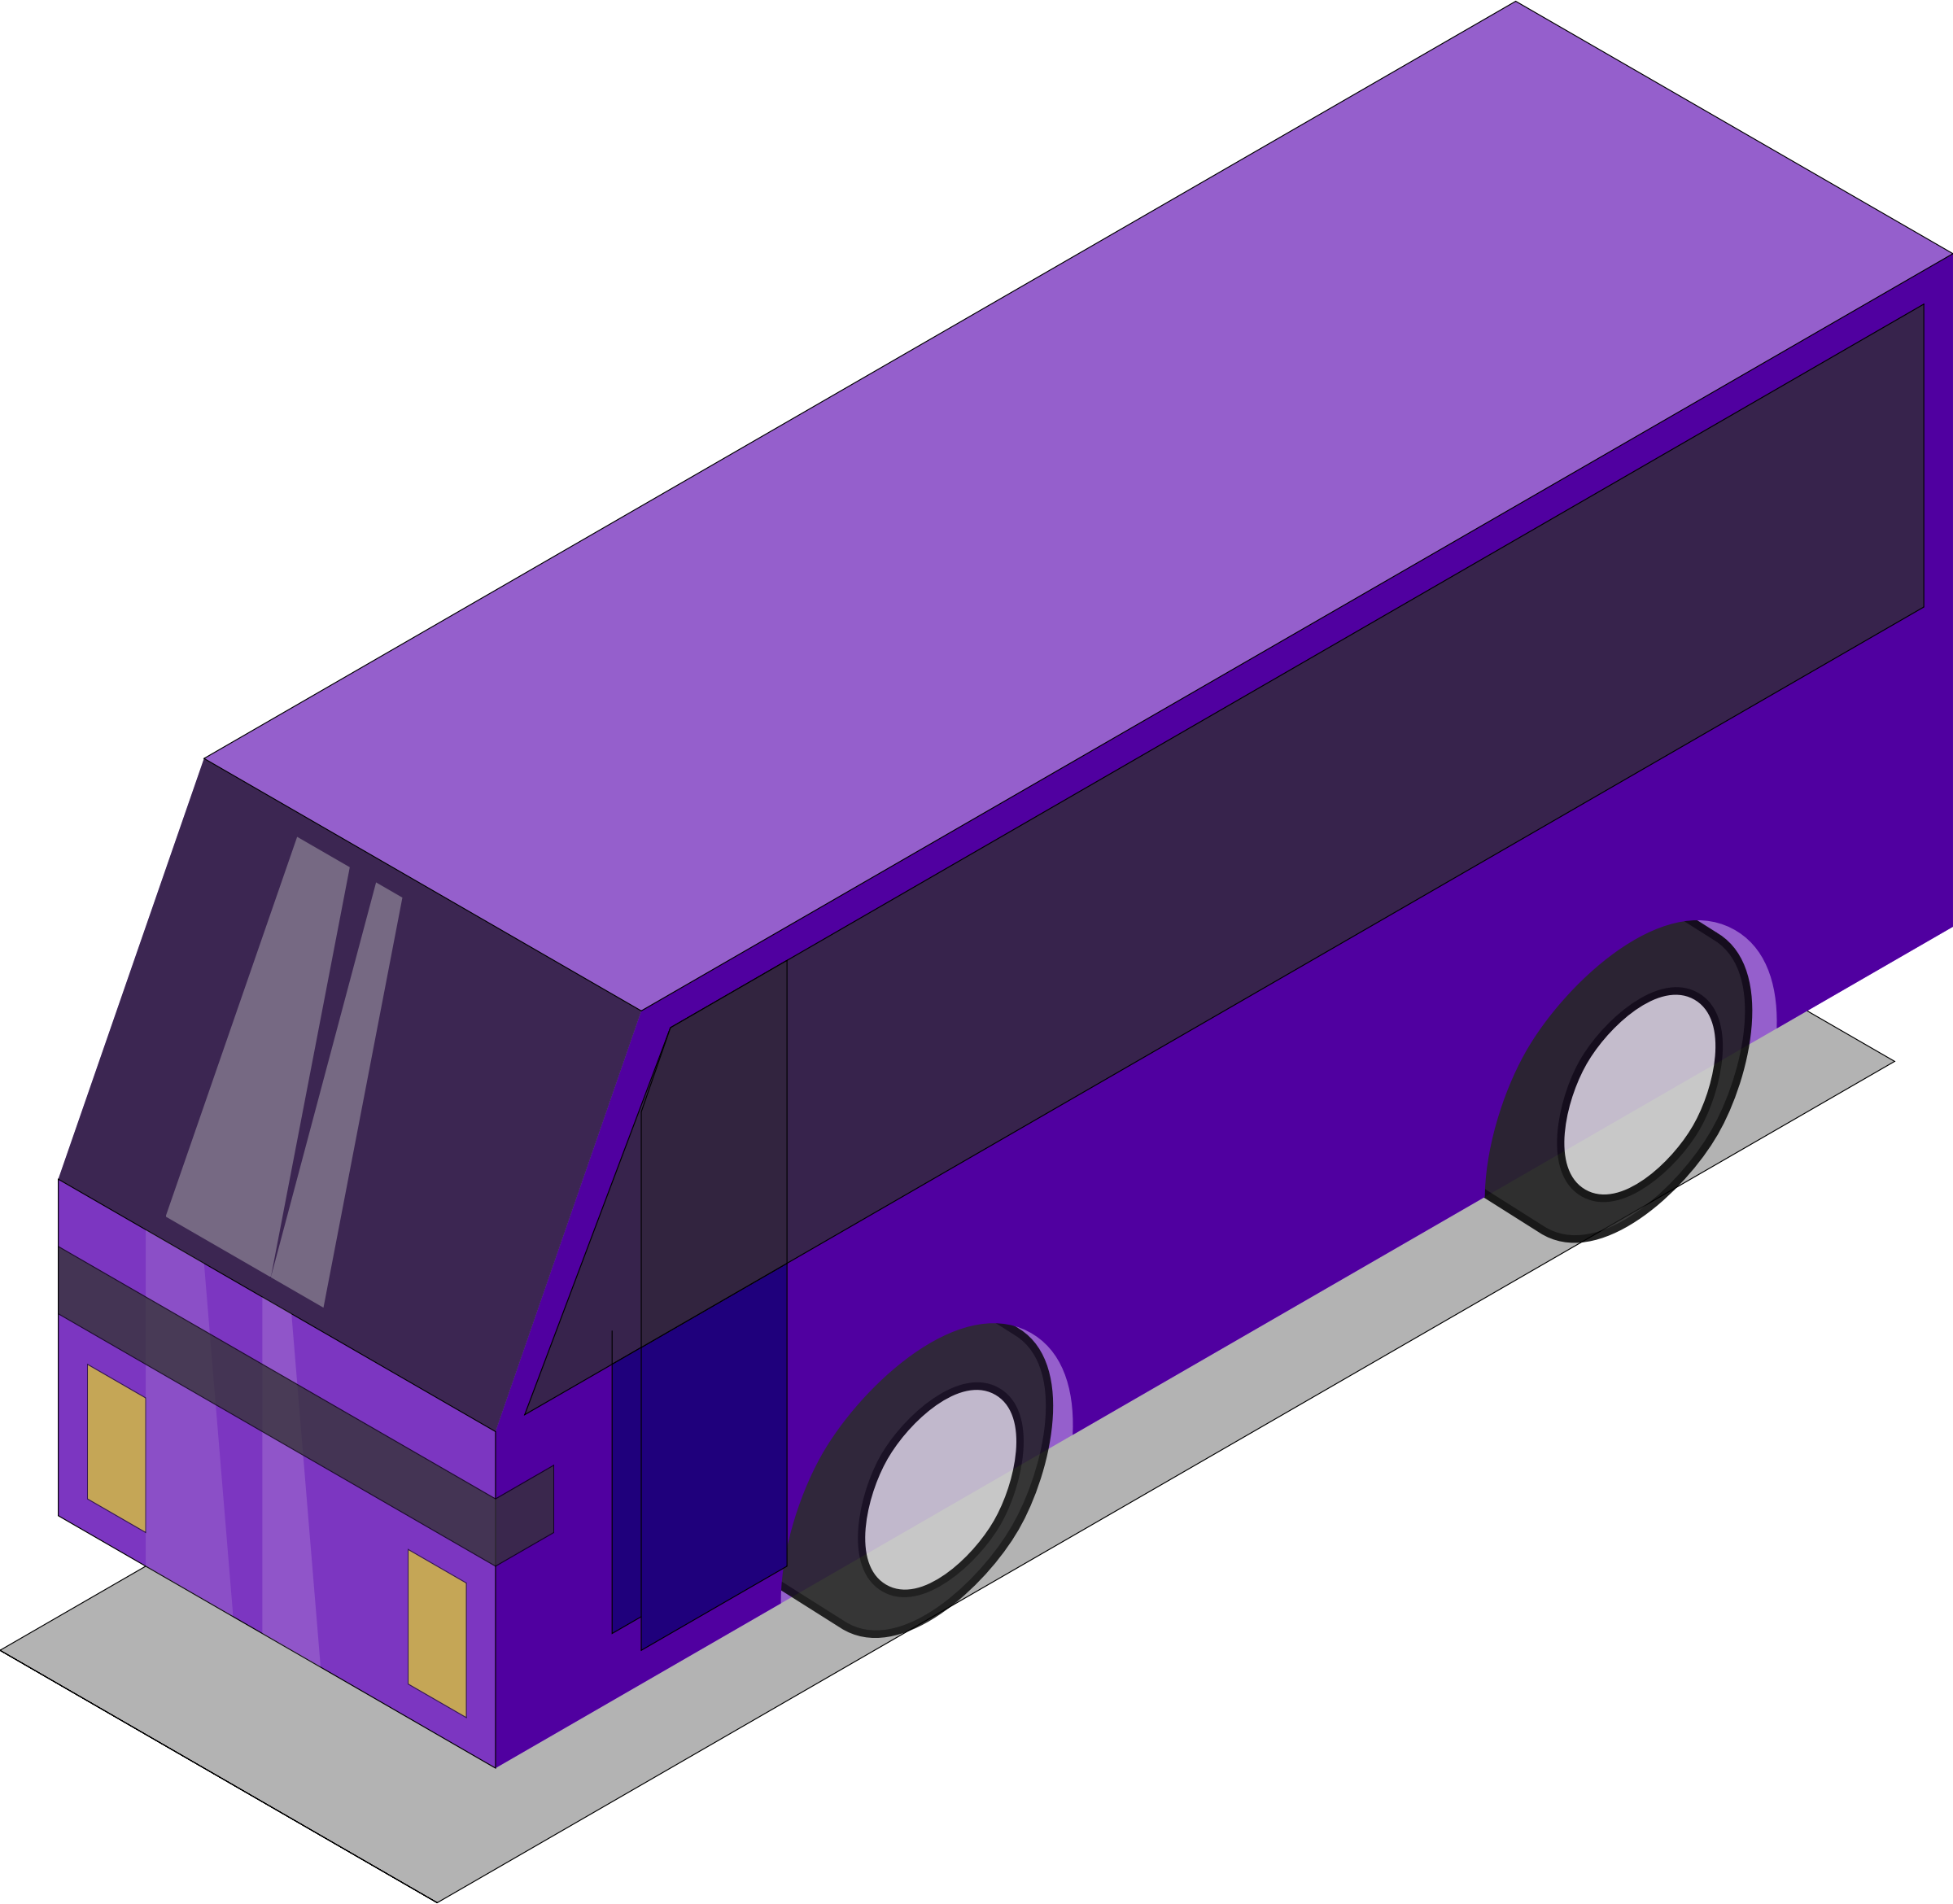 Purple bus by Astro